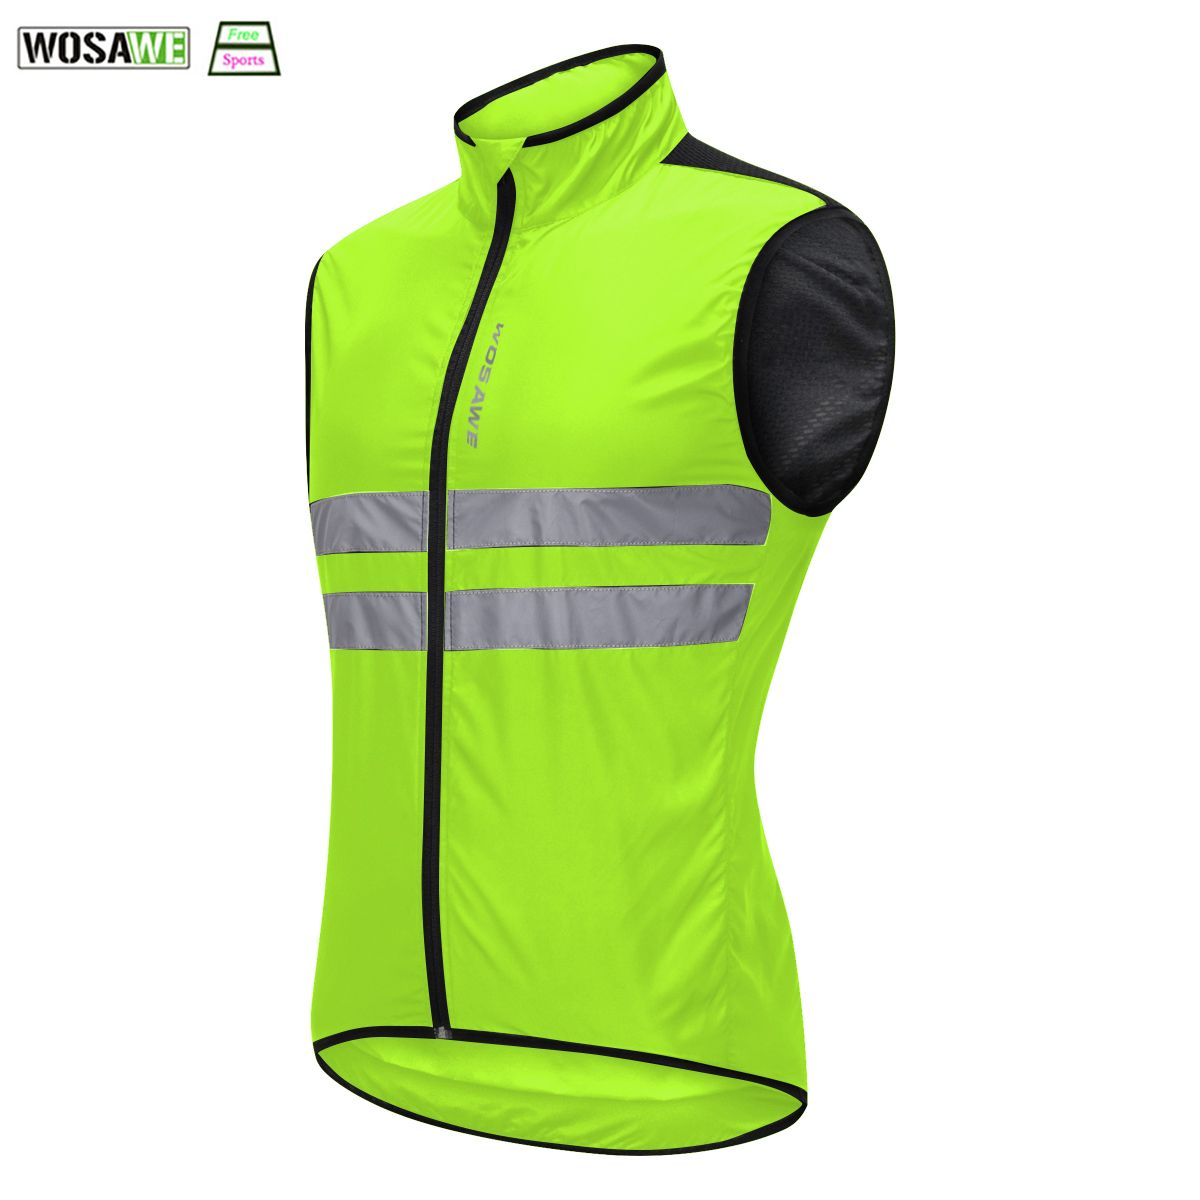 WOSAWE Cycling Reflective Vest High Visibility Off-Road Racing Vest Night Riding Jacket Running motorcycle Bicycle Safety Vest